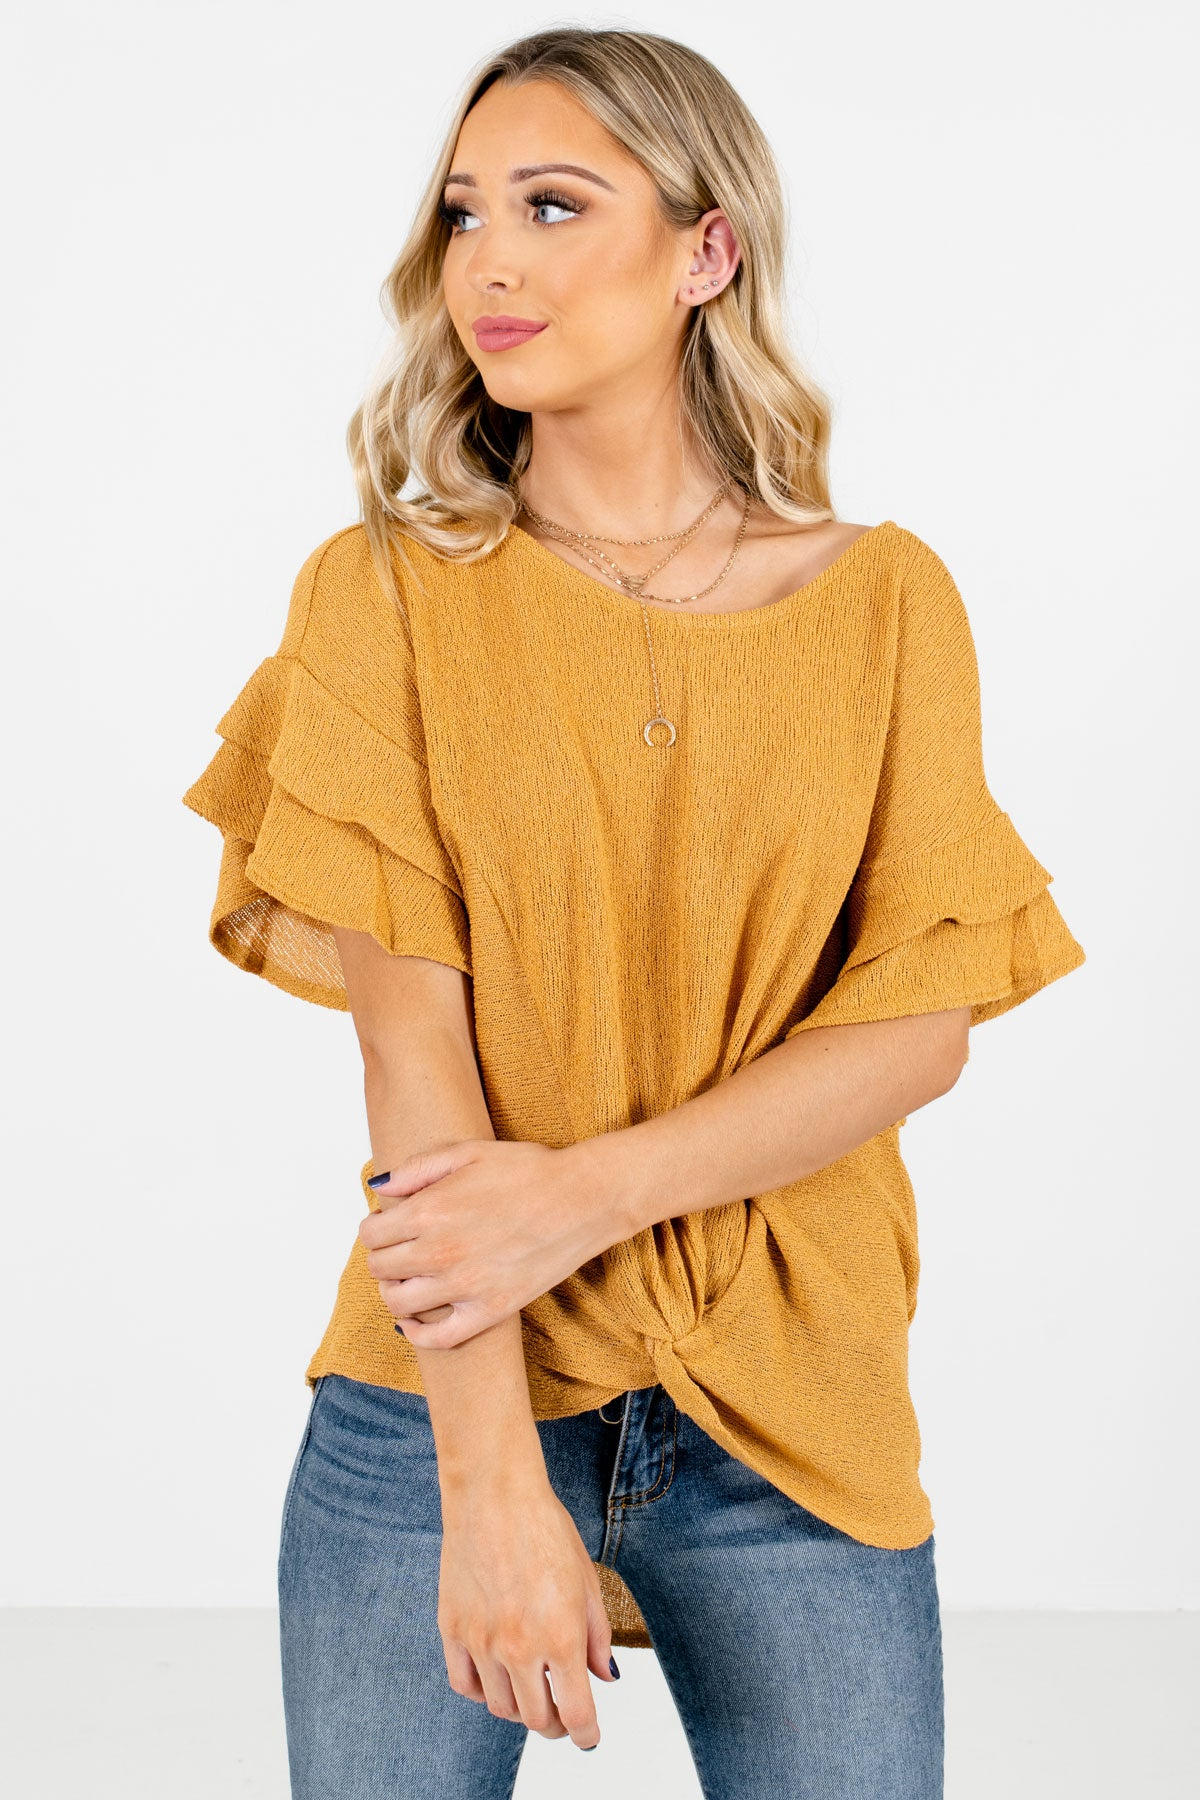 Mustard Yellow Ruffle Sleeve Boutique Tops for Women